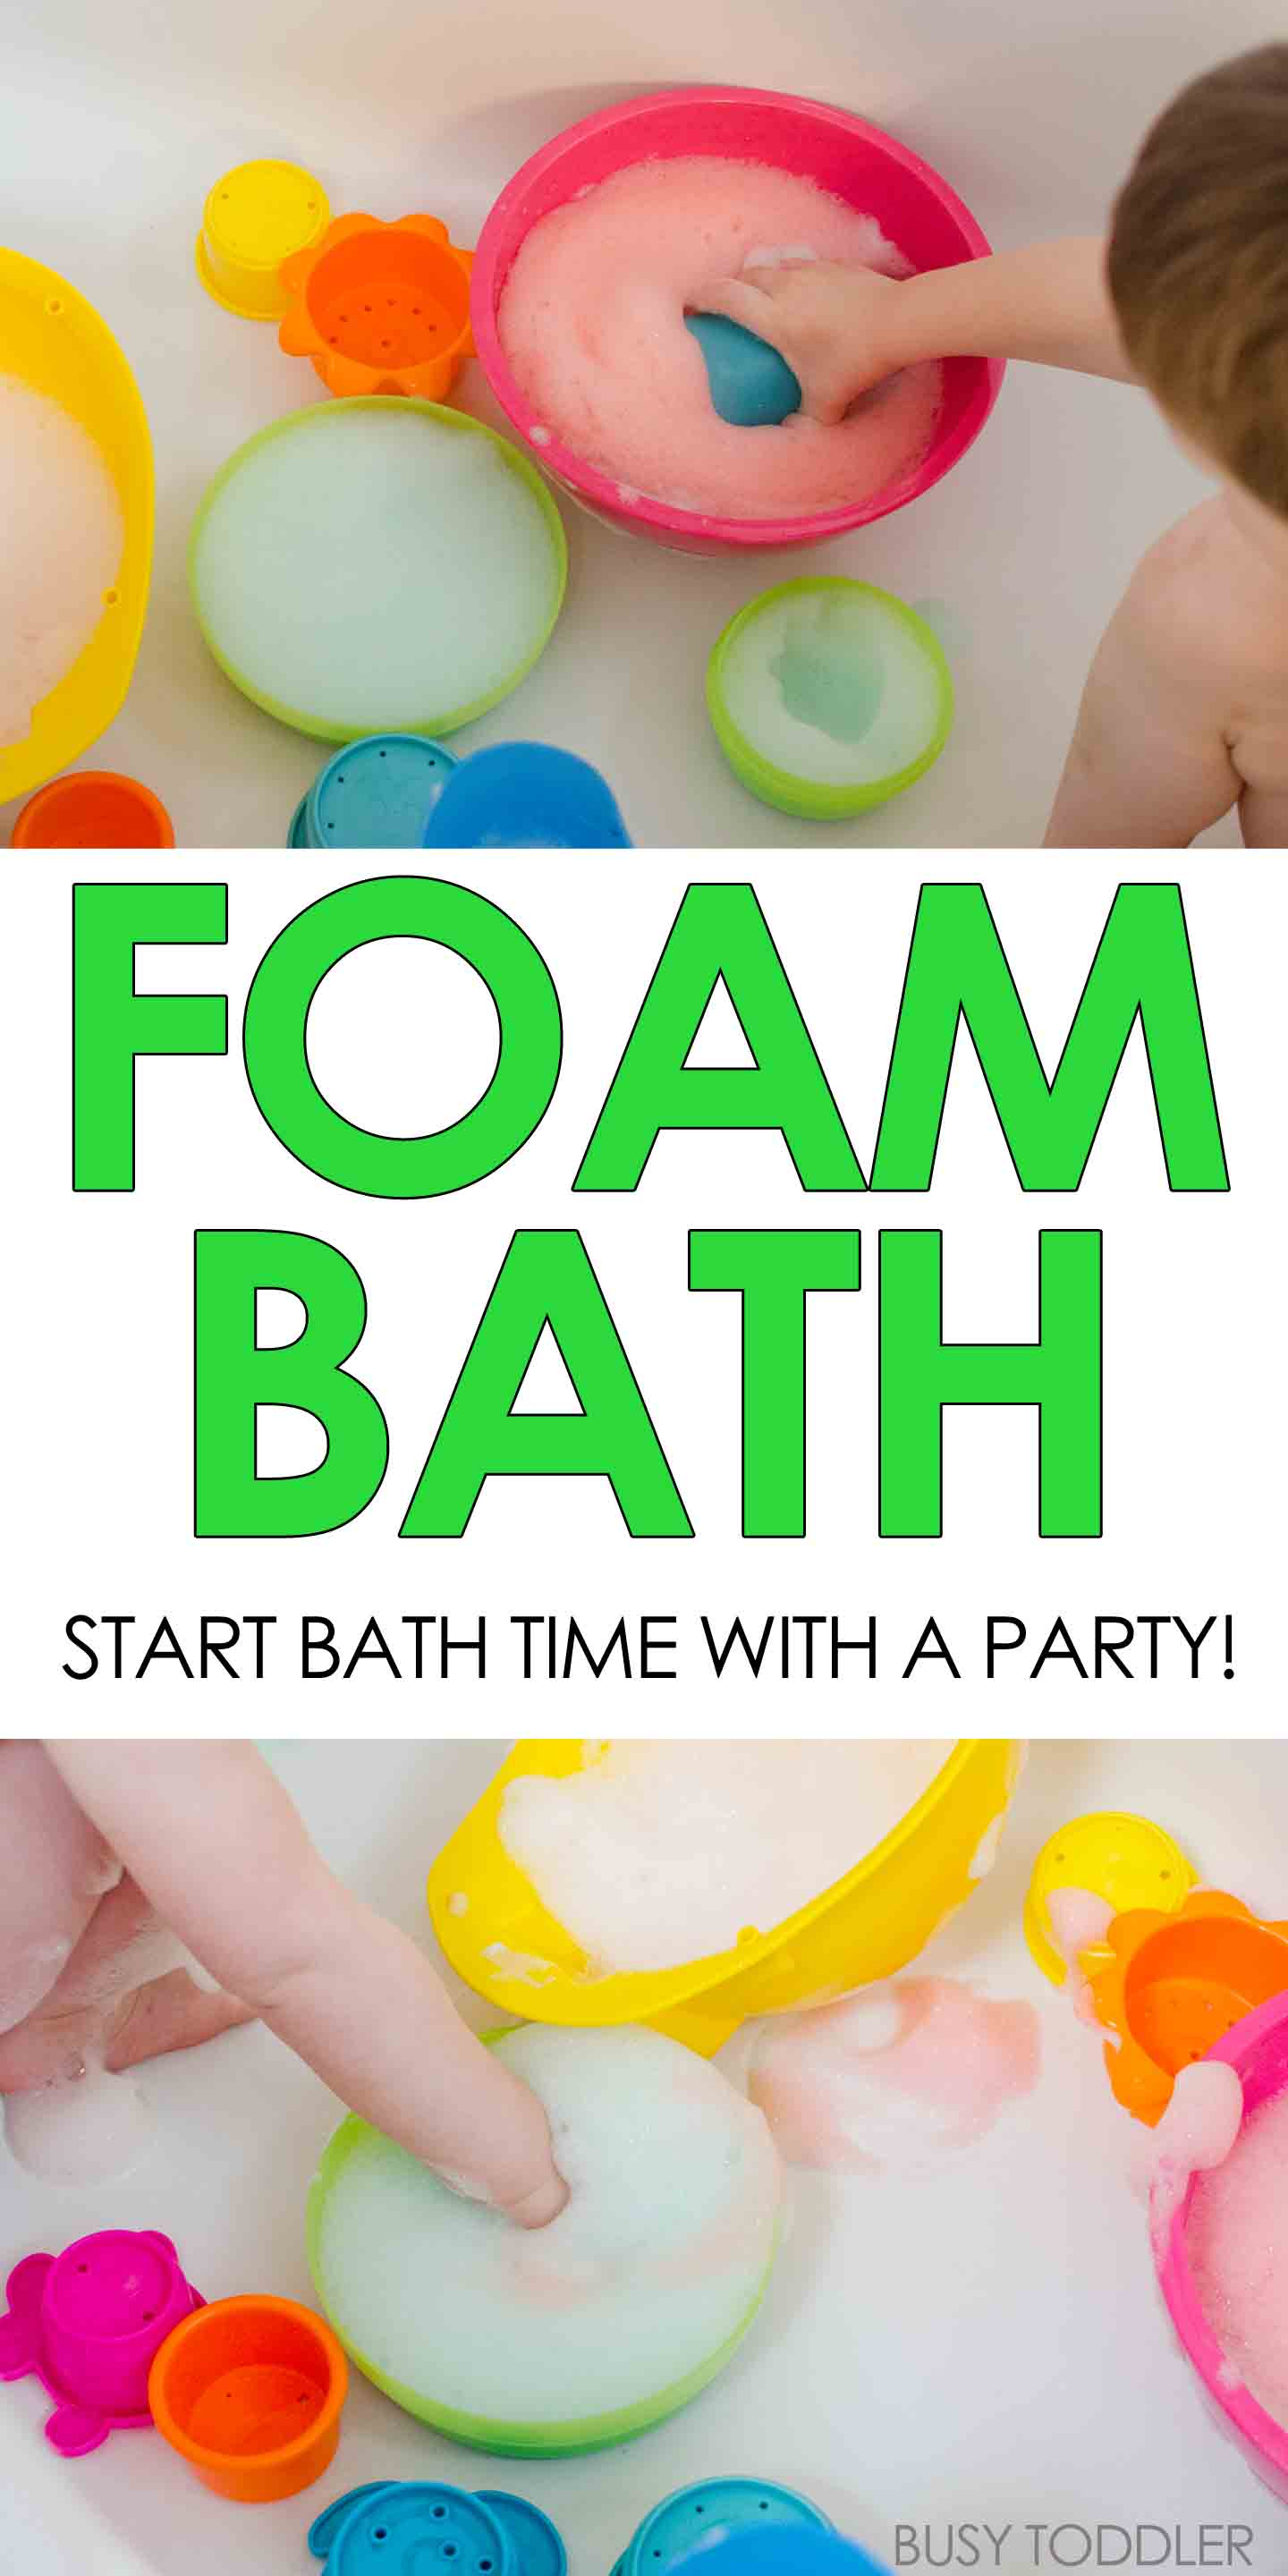 FOAM BATH: Have fun in the tub with this easy activity; make bubble foam to play with at bath time